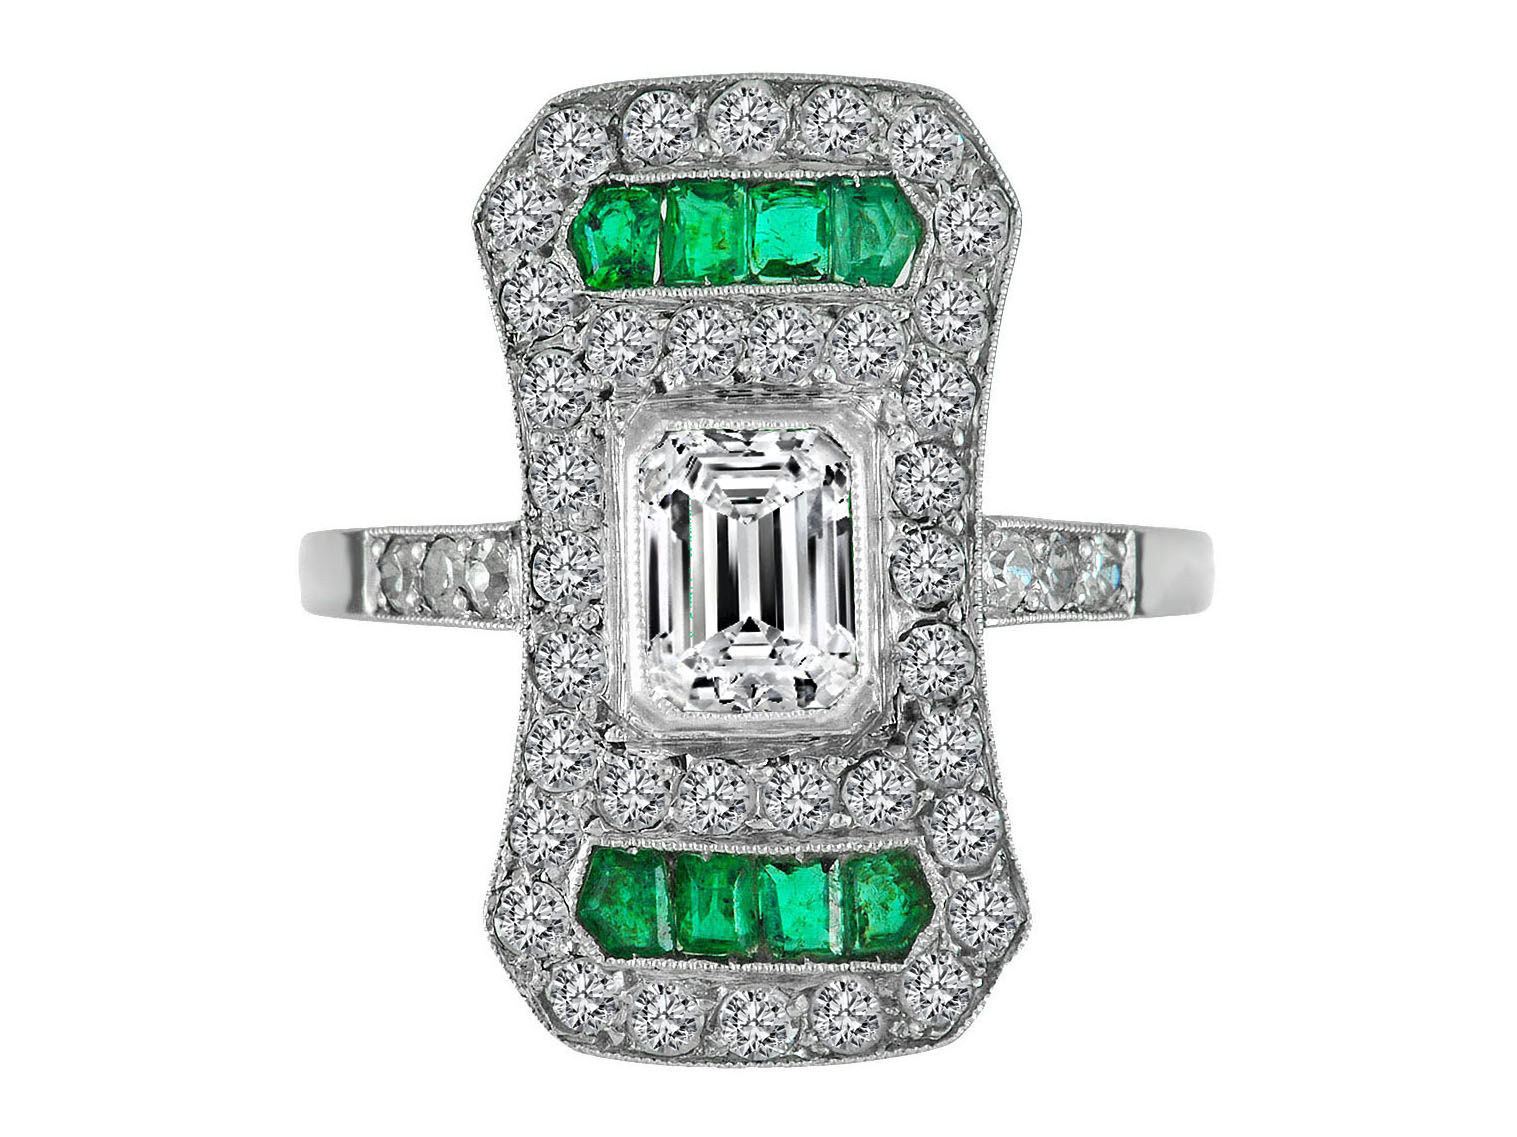 Emerald Cut Diamond Art-Deco Engagement Ring in 14K white Gold